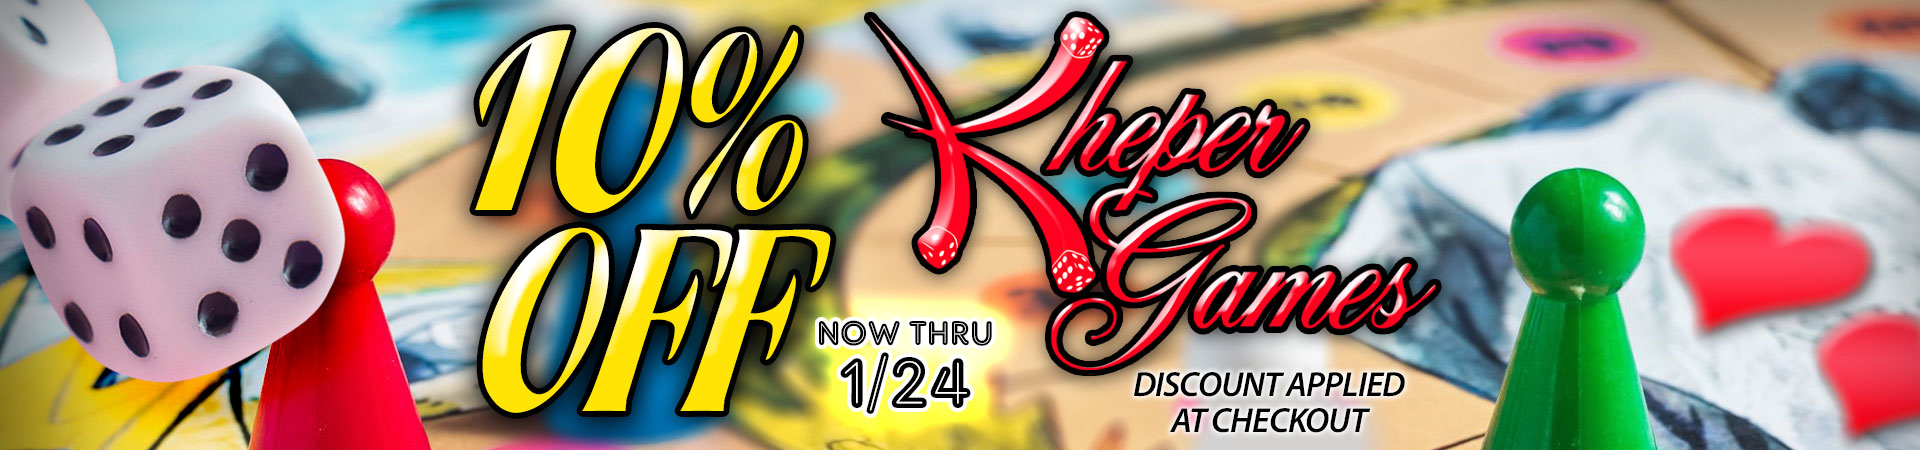 10% off of Kheper Games - Now Thru 1/24 - Discount Applied At Checkout